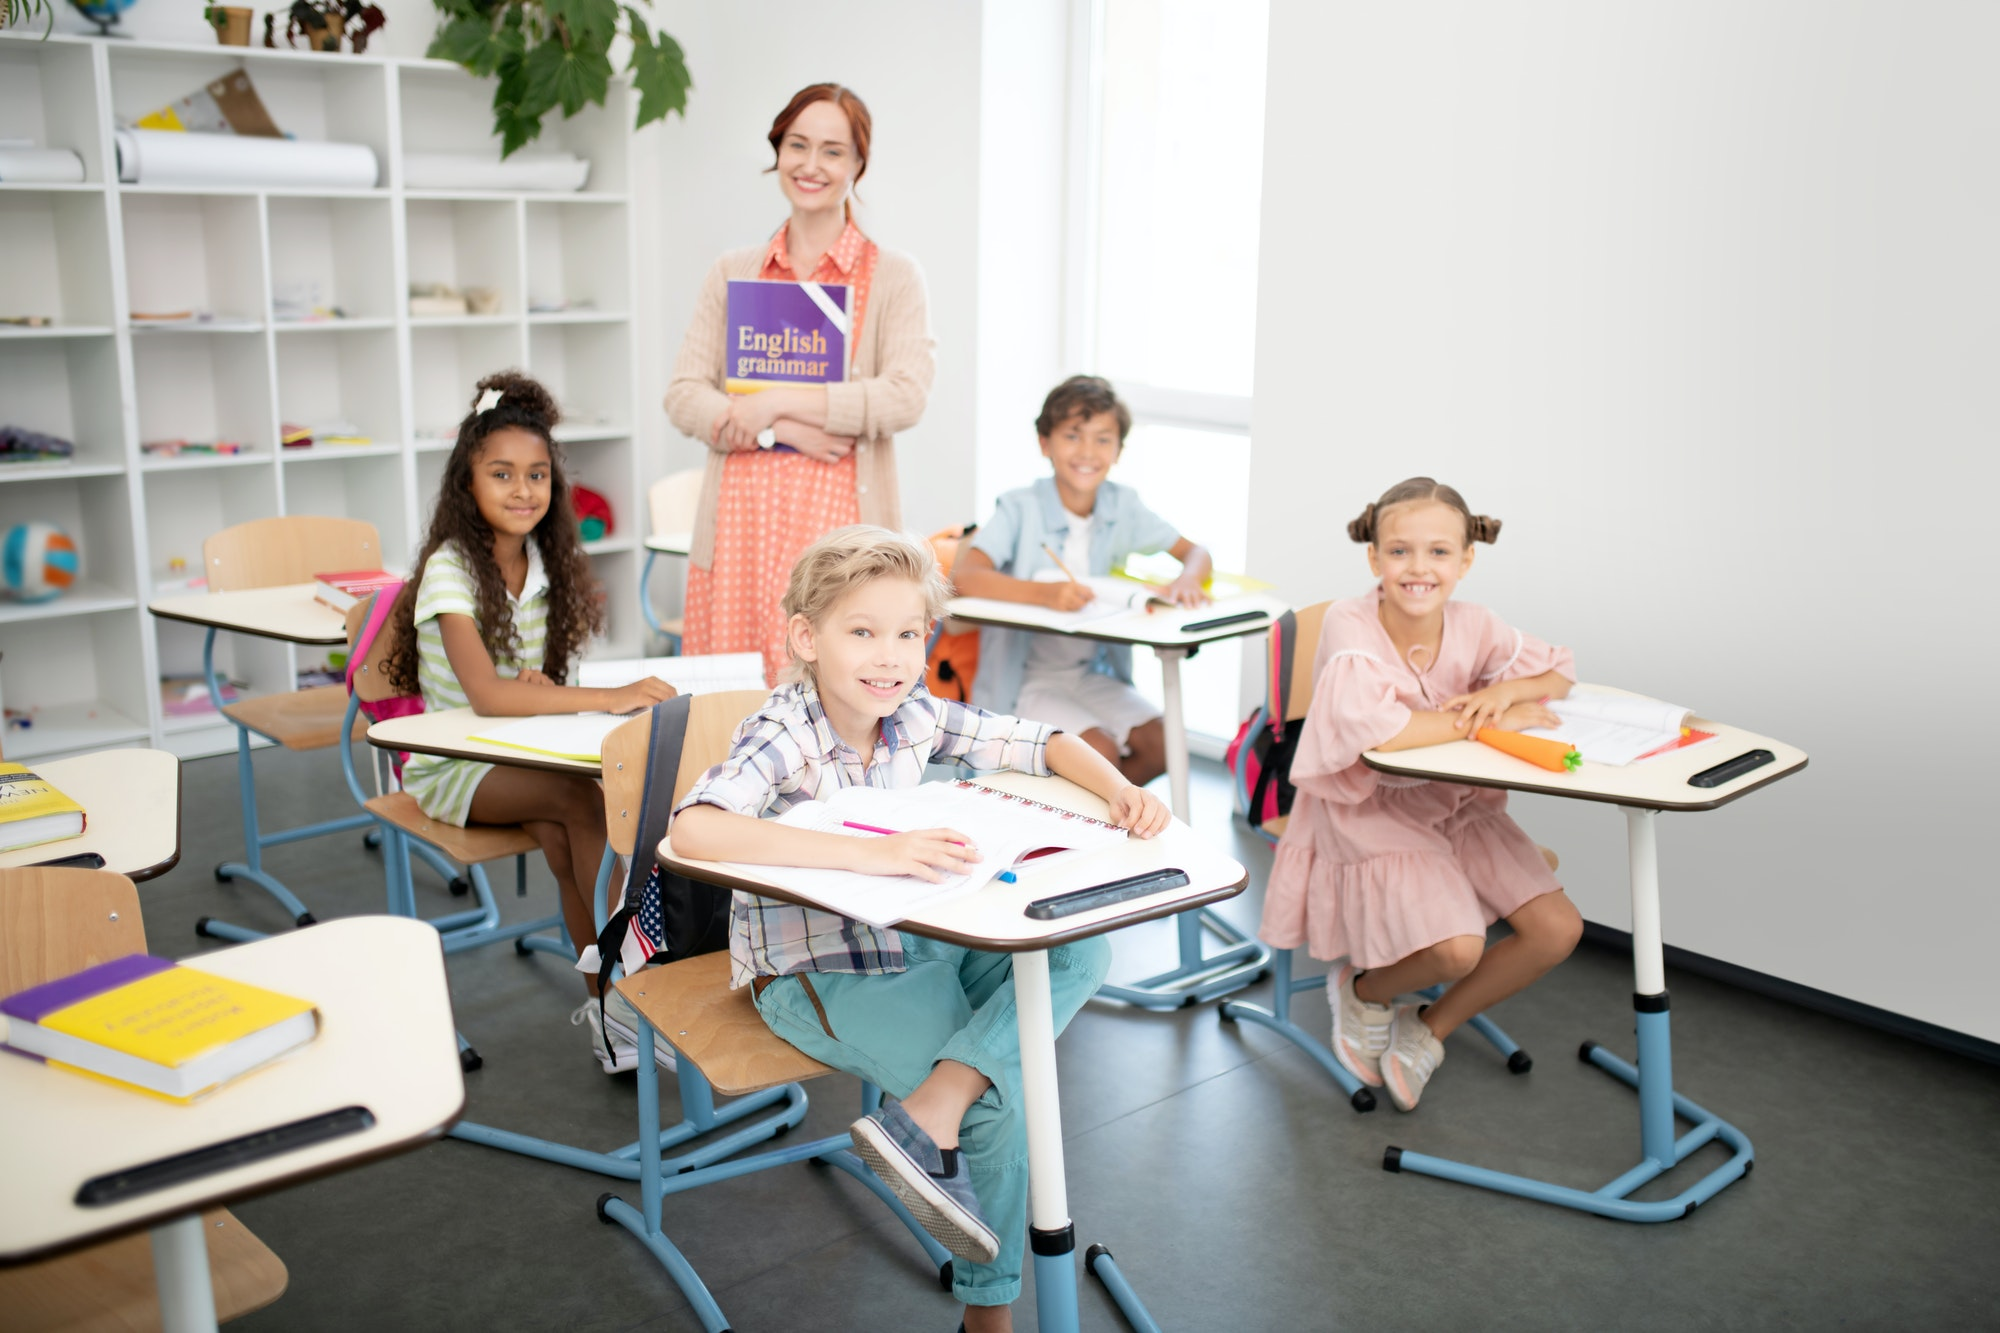 Children feeling excited before having first English class